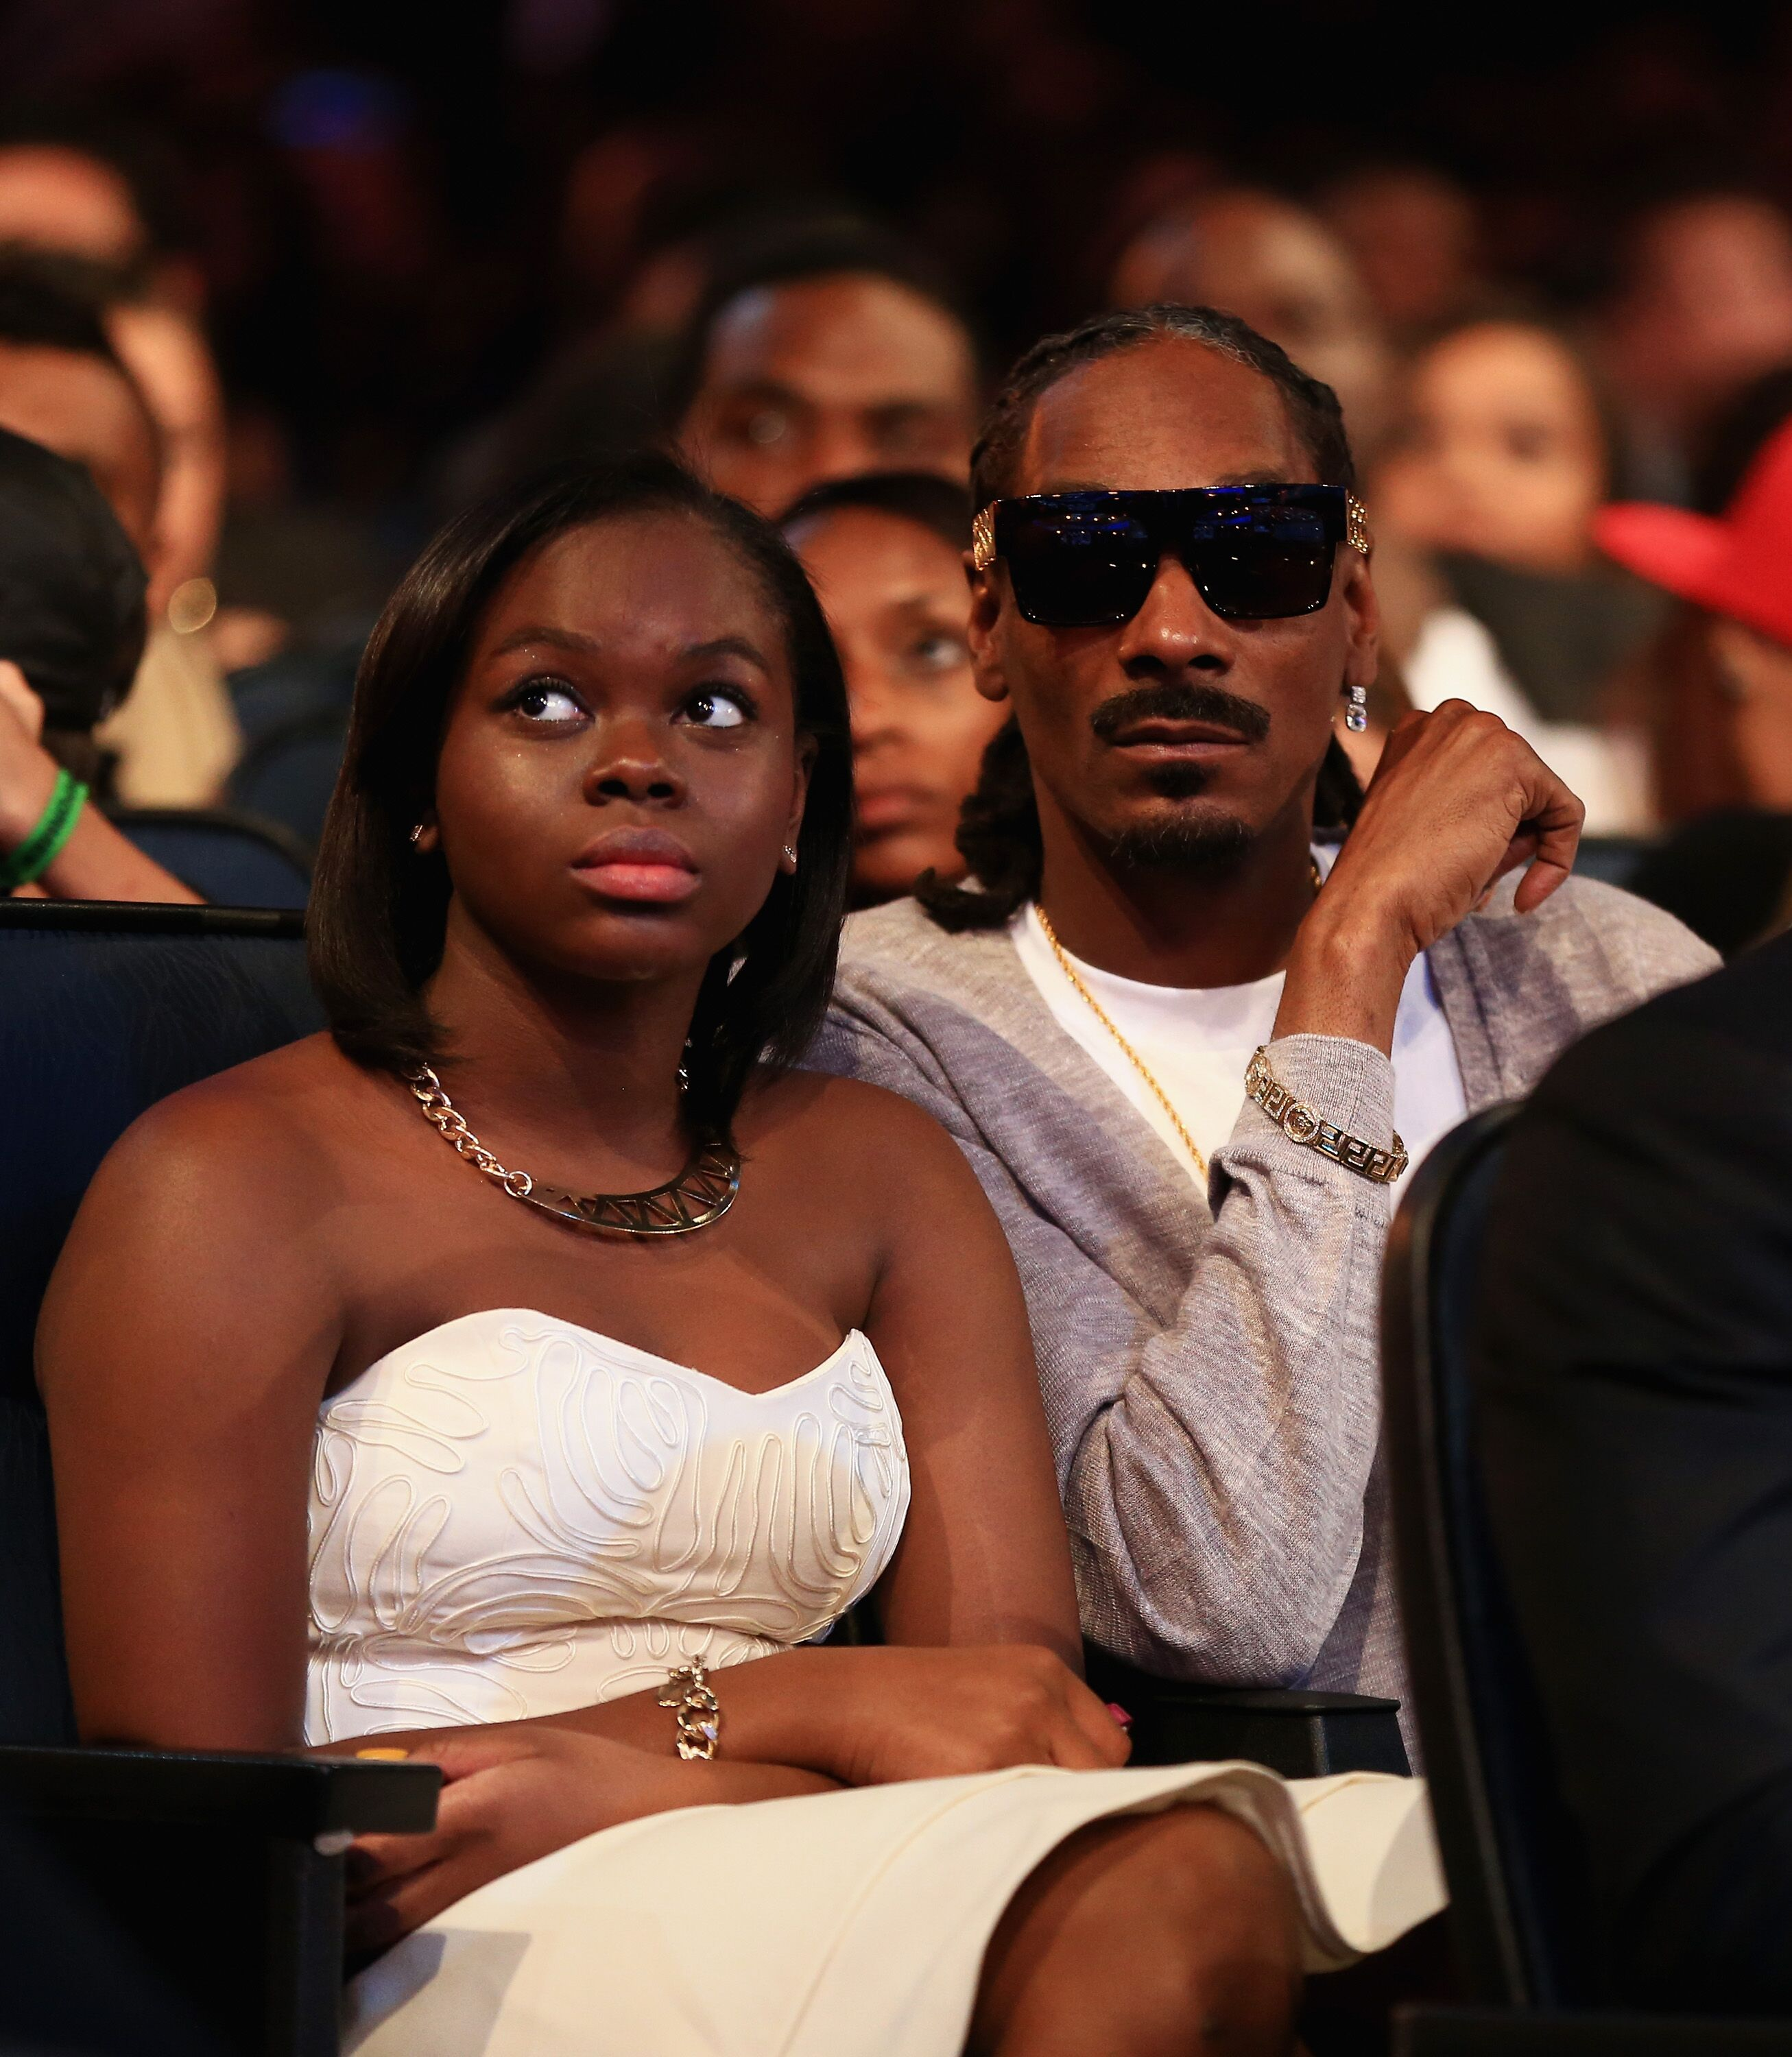 Snoop Dogg and Cori Broadus at the BET AWARDS in Los Angeles in 2014 | Source: Getty Images